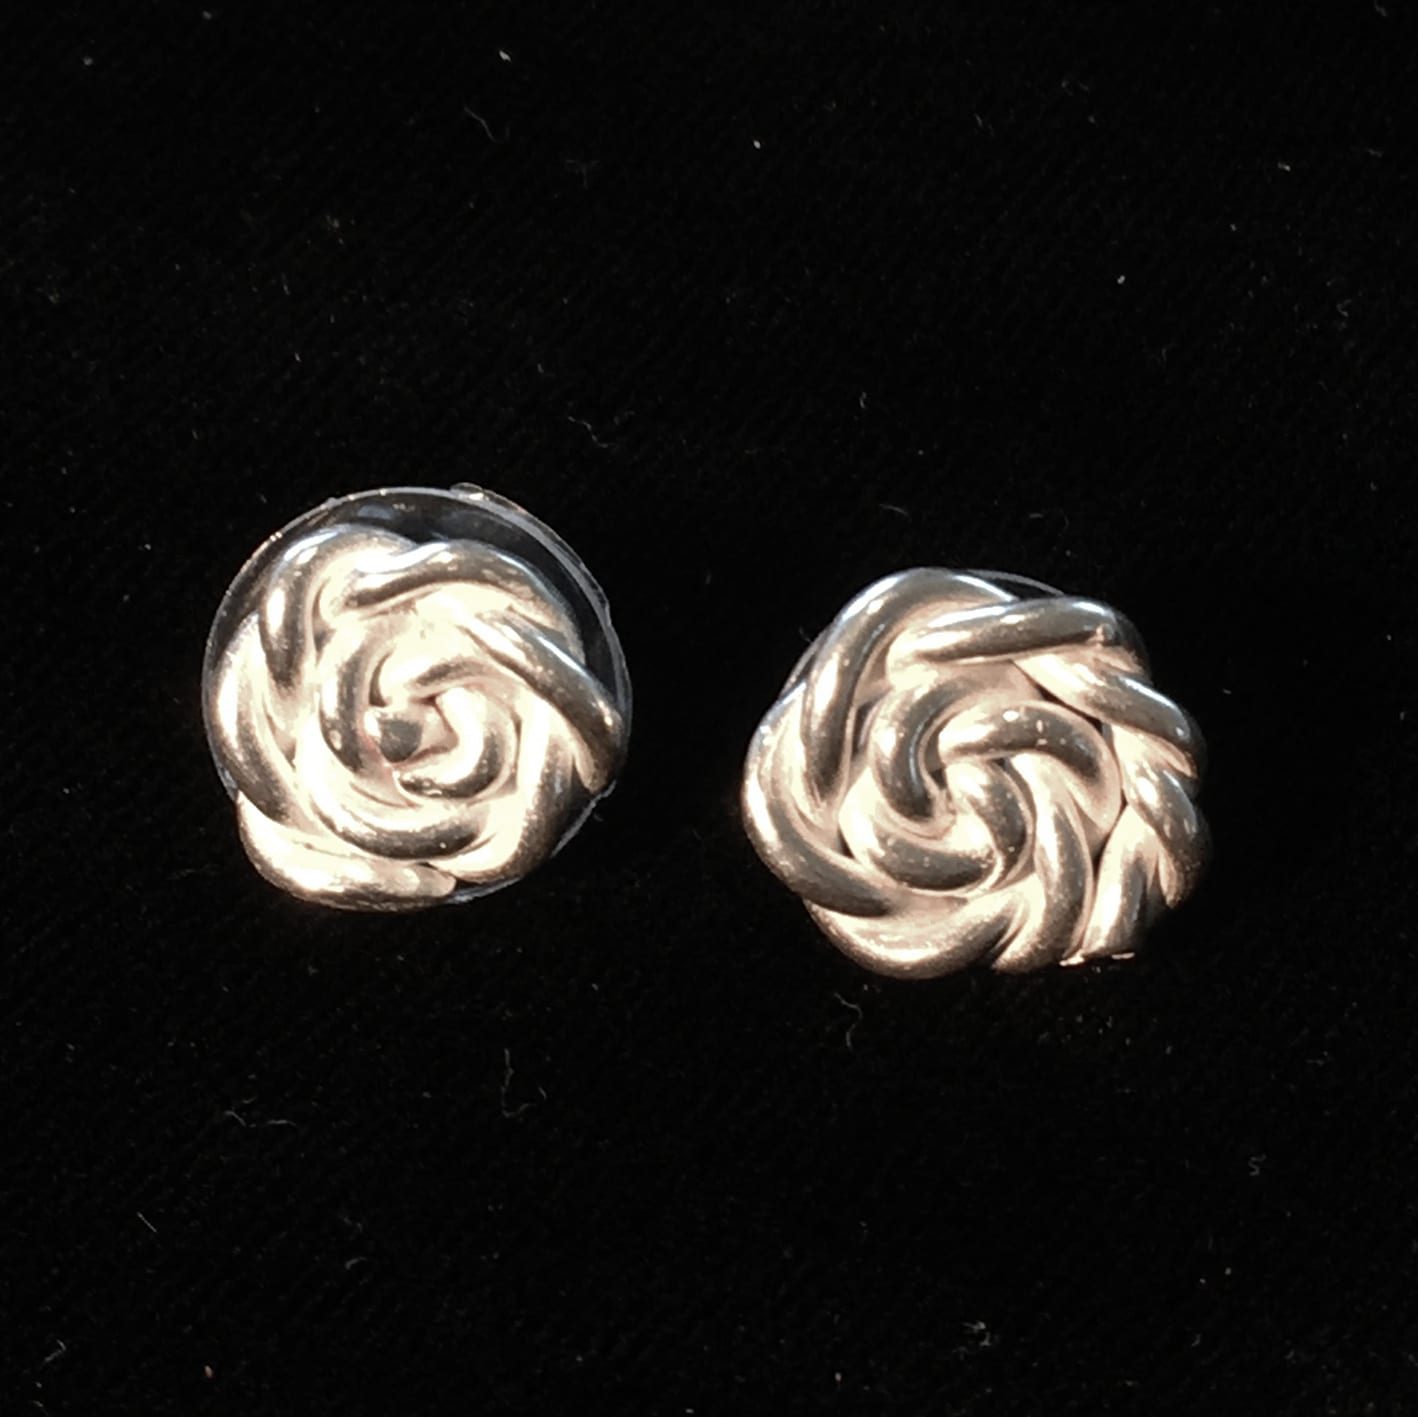 "<span class=""link fancybox-details-link""><a href=""/artists/186-helen-feiler/works/6751-helen-feiler-silver-rope-twist-stud-earrings-2019/"">View Detail Page</a></span><div class=""artist""><strong>Helen Feiler</strong></div> <div class=""title""><em>Silver 'Rope Twist' Stud Earrings</em>, 2019</div> <div class=""medium"">pure silver</div><div class=""price"">£88.00</div>"